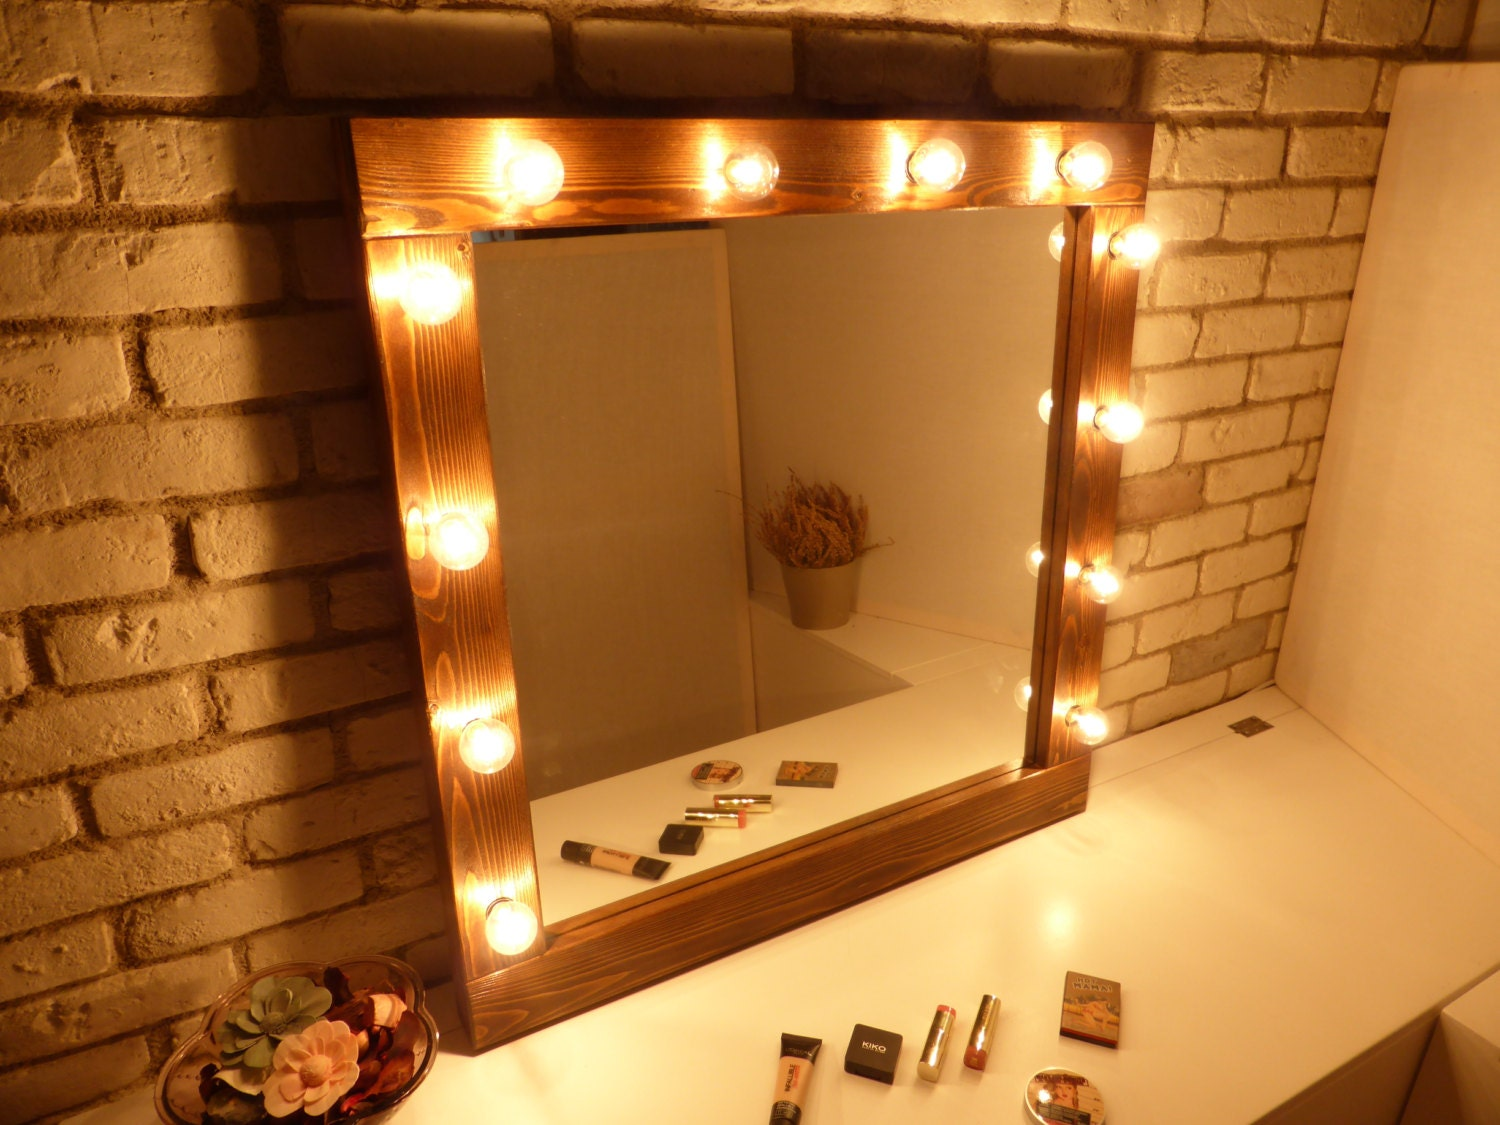 Rustic Vanity Mirror With Lights : Hollywood mirror with lights rustic mirror makeup mirror